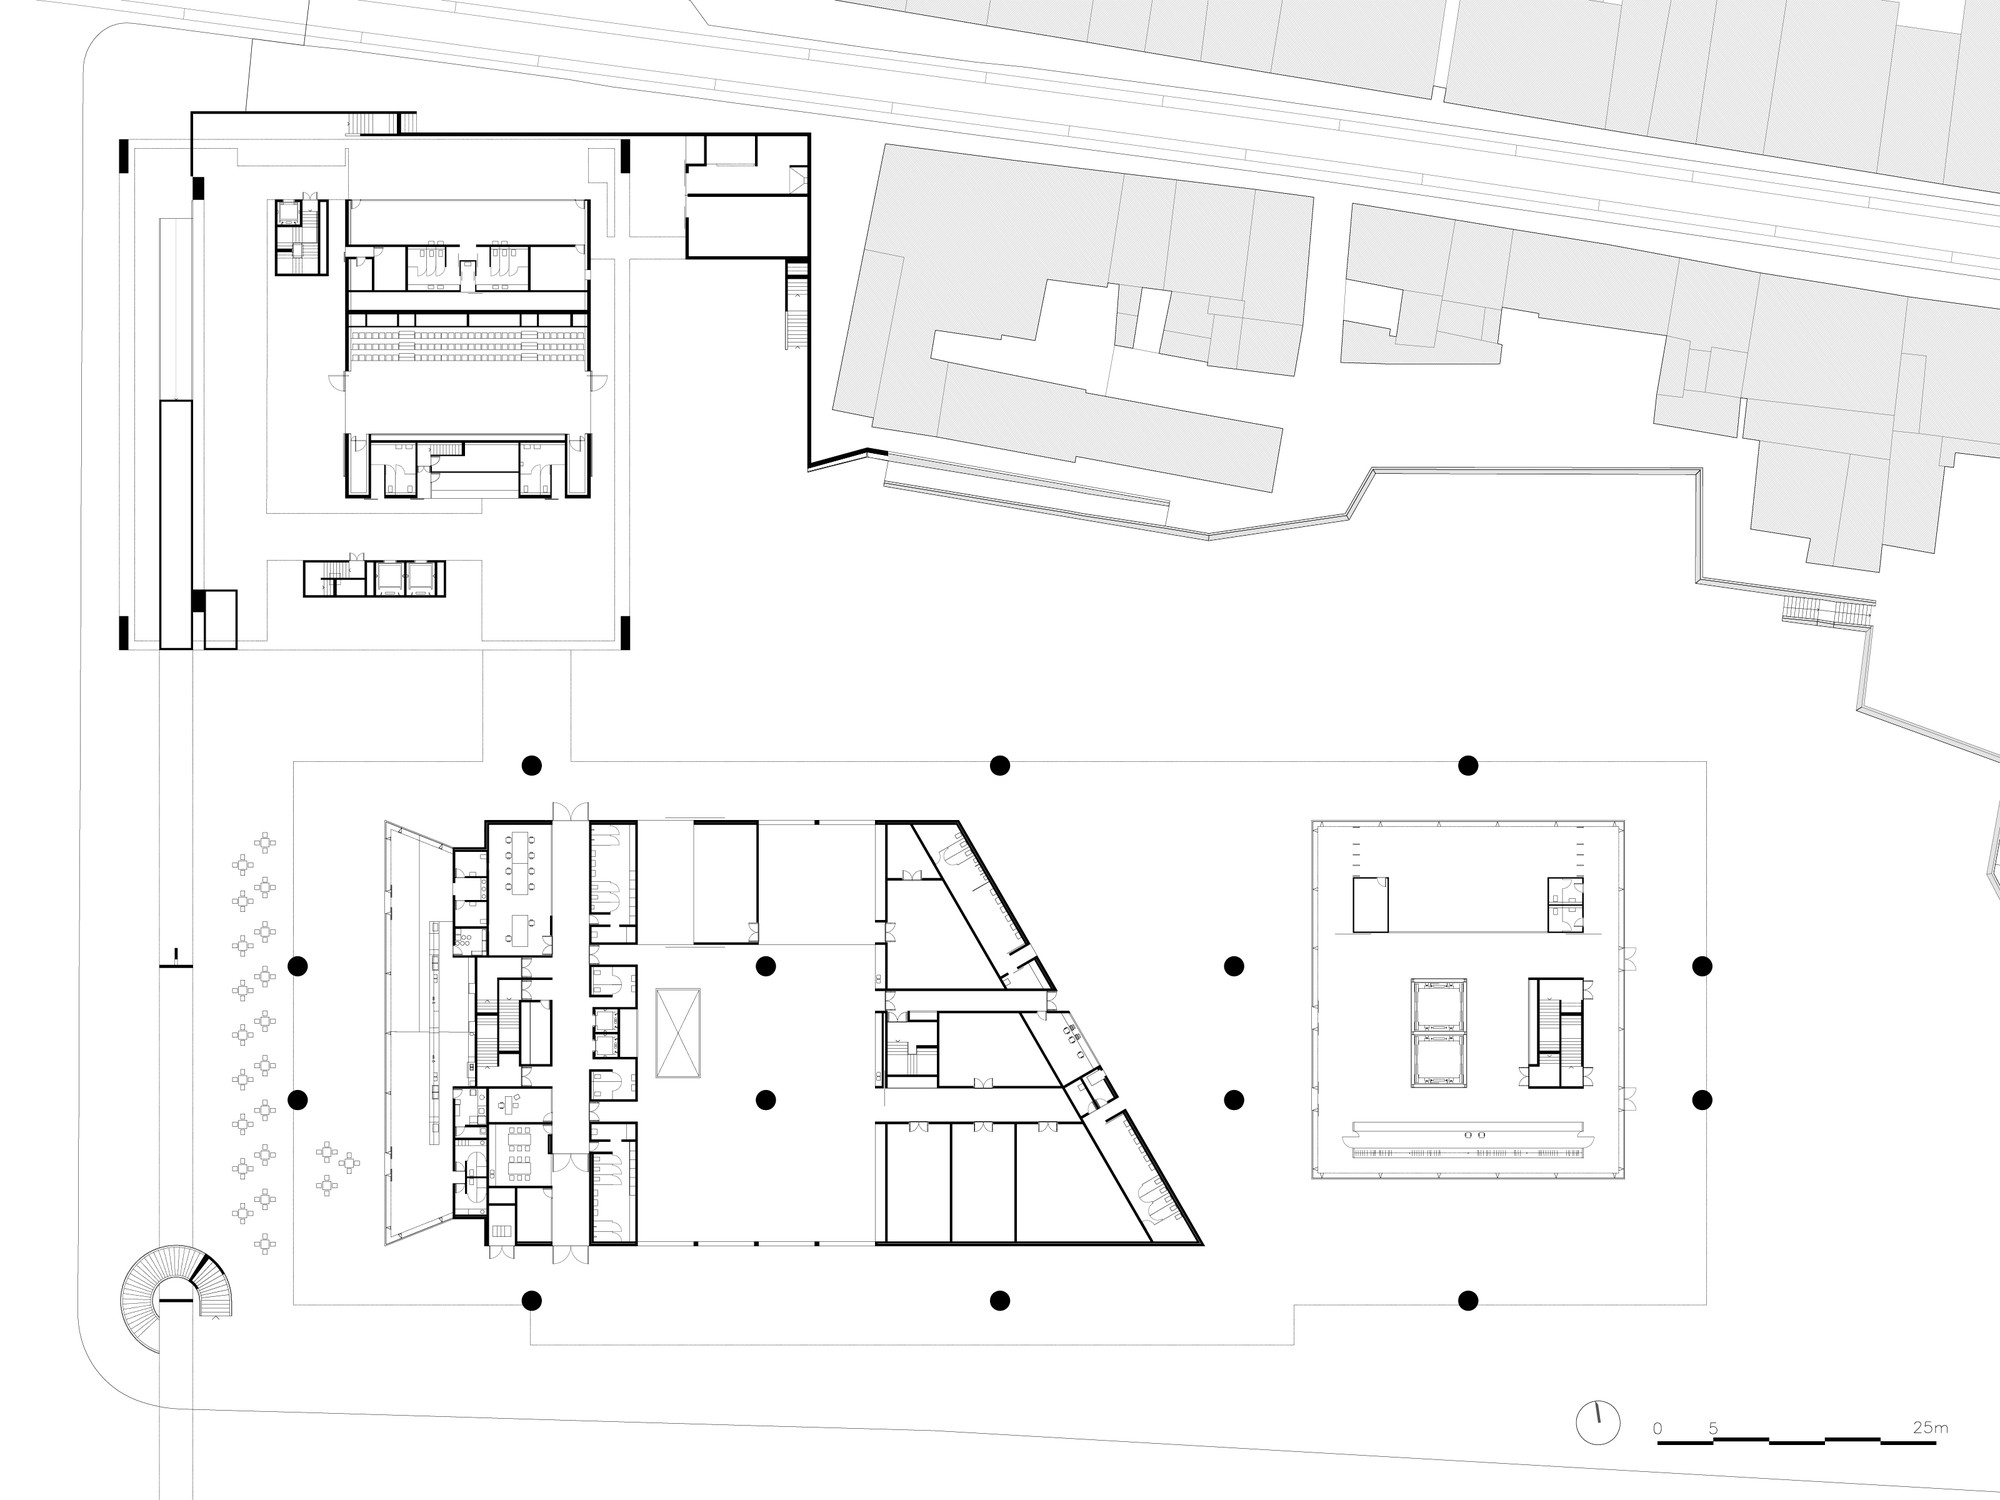 Museu Dos Coches,Ground Floor Plan